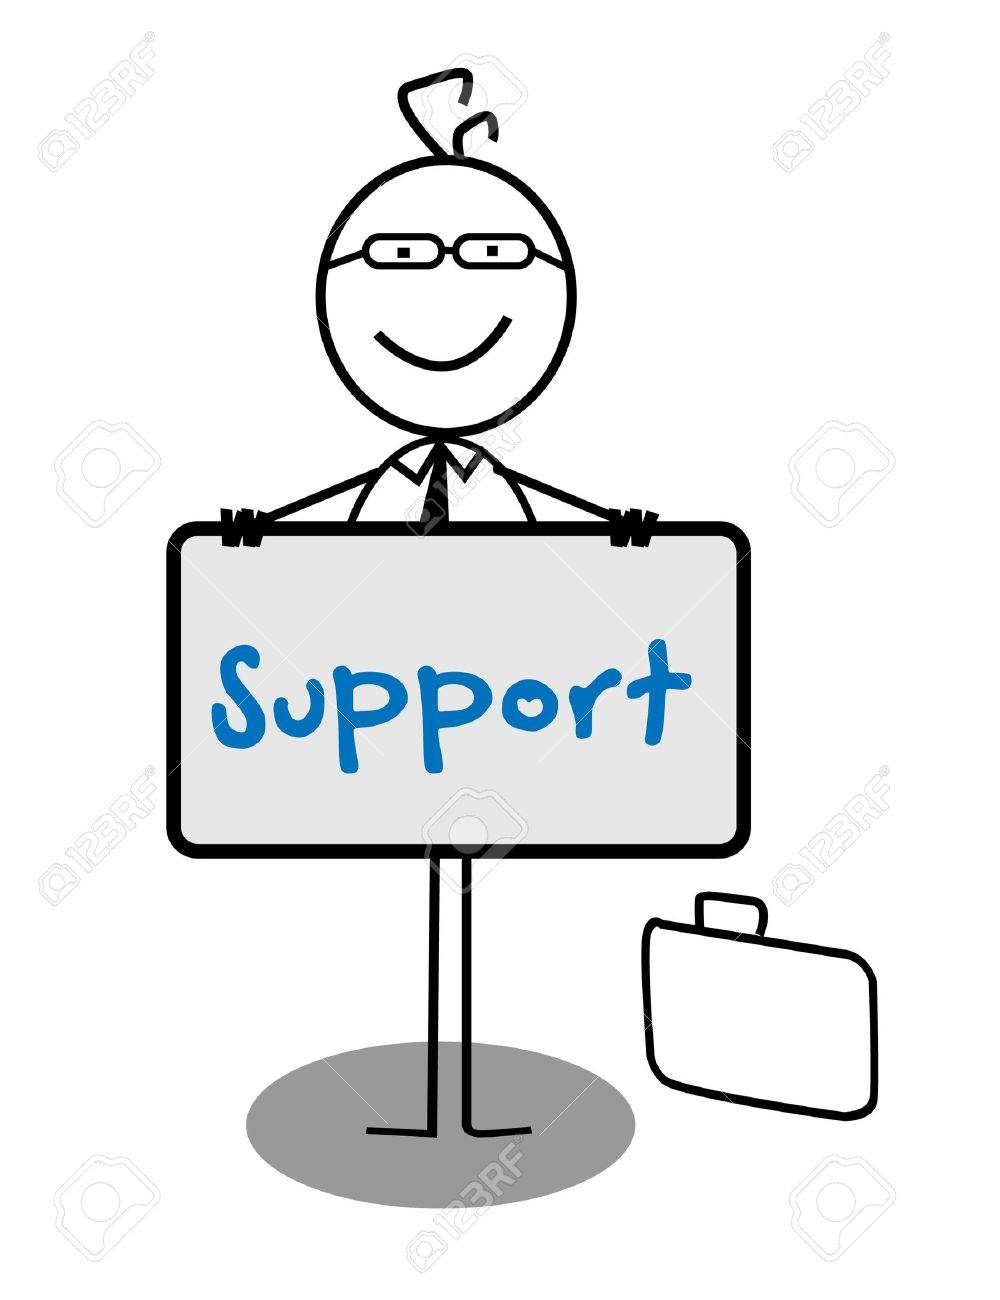 Businessman Support Banner Stock Vector - 13189352